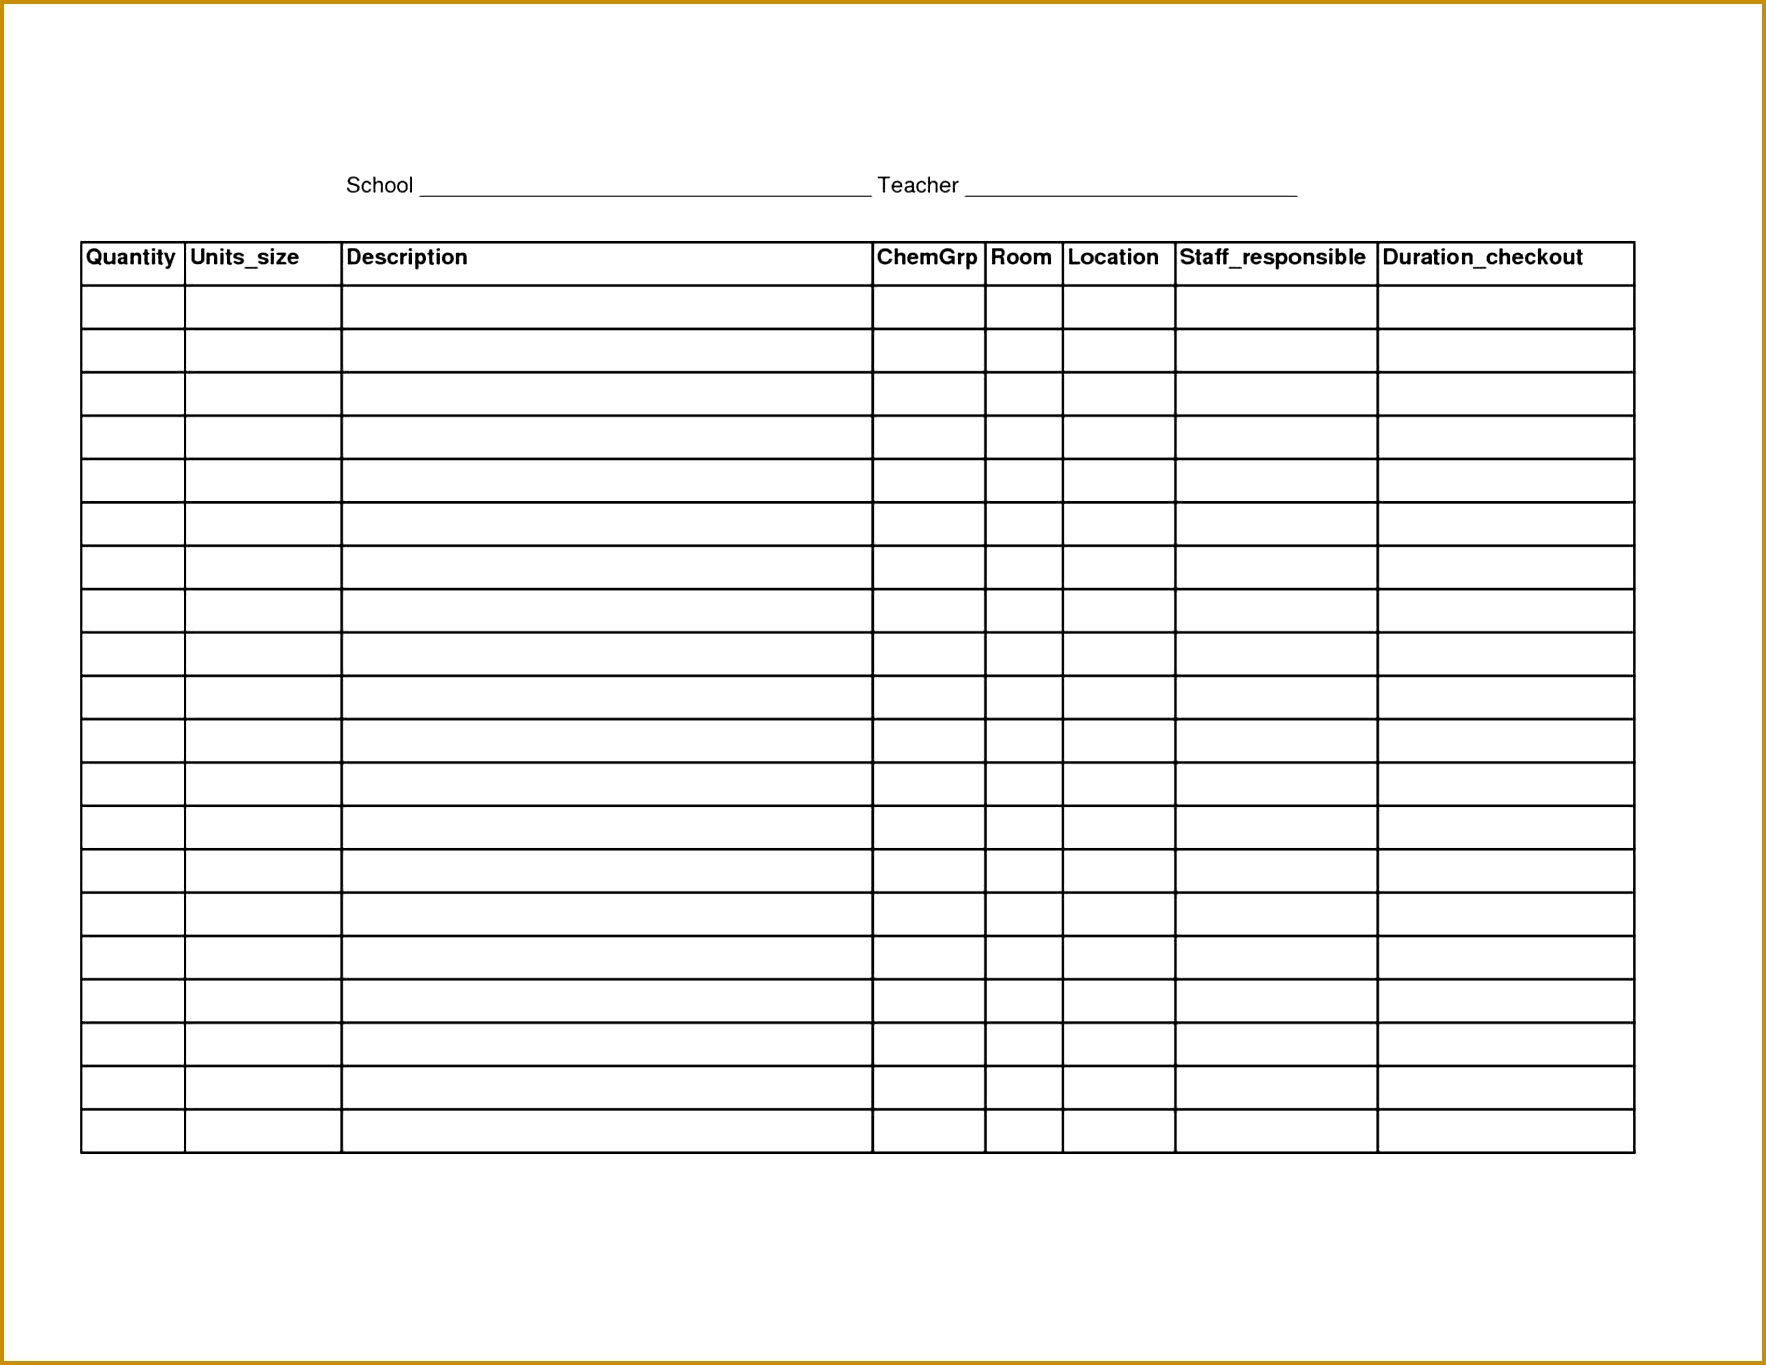 Template Business Daily Restaurant Preshift Meeting Sheet For My Daily Kitchen Stock Control Sheet Restaurant Preshift 13651766